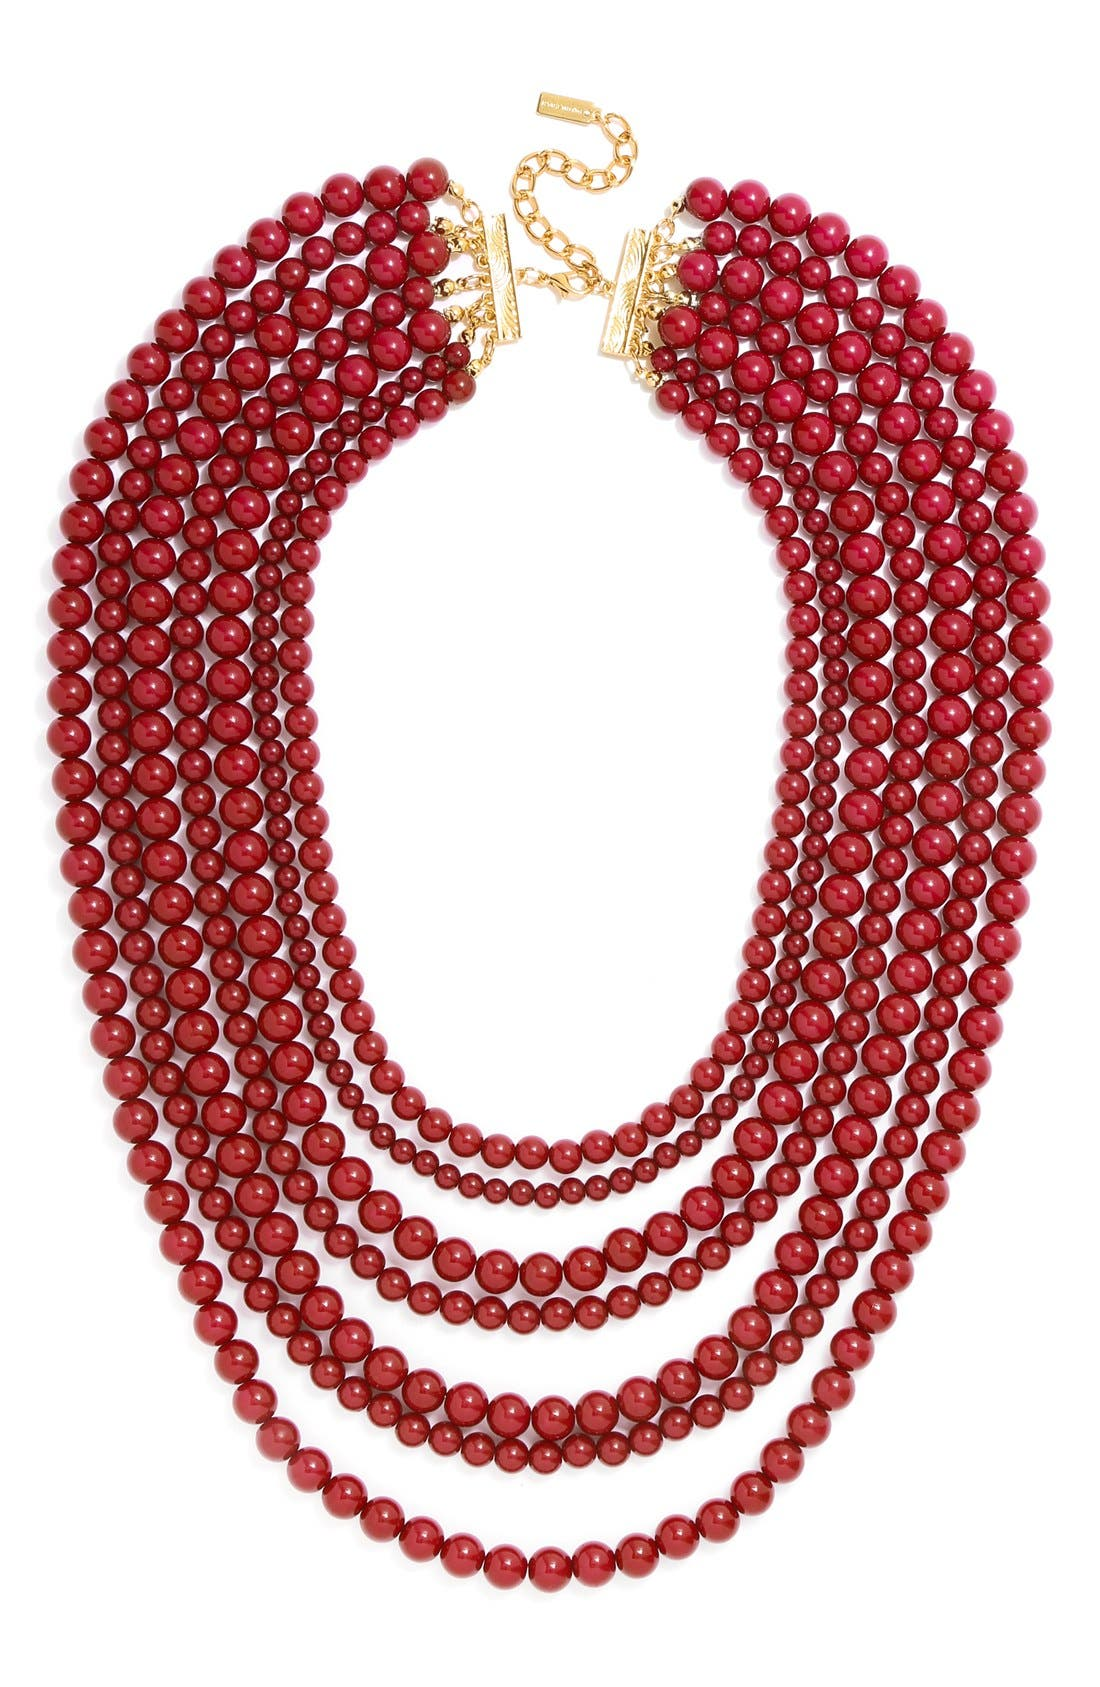 'Bold' Multistrand Beaded Statement Necklace,                             Main thumbnail 10, color,